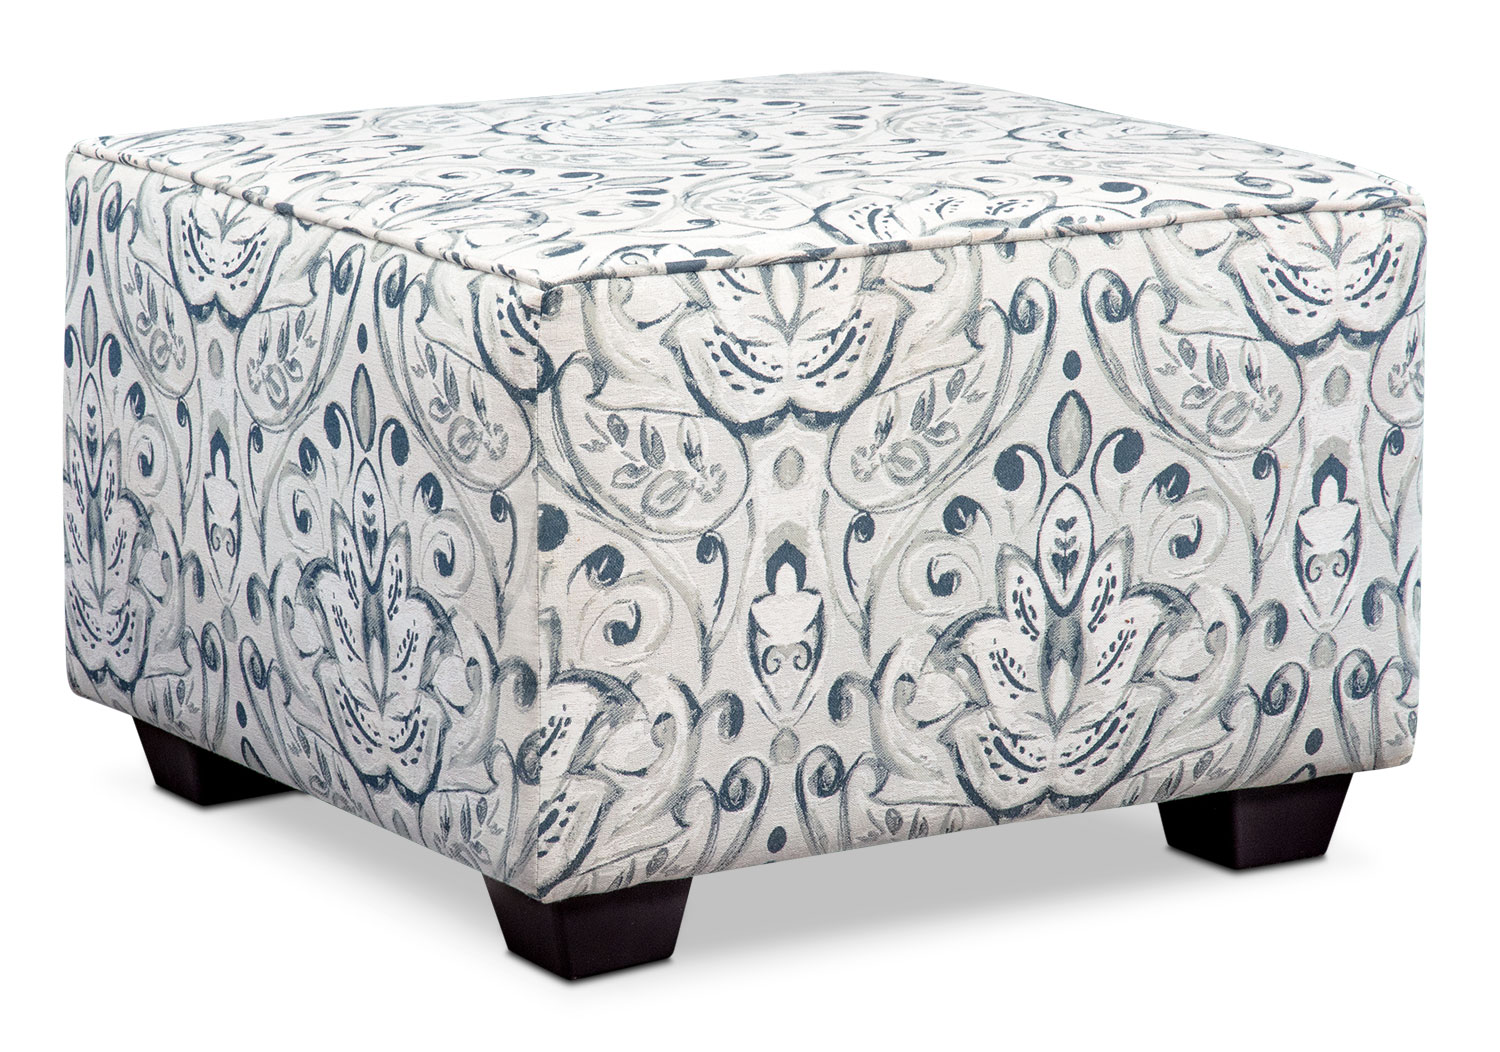 Living Room Furniture - Mckenna Accent Ottoman - Multi Pewter